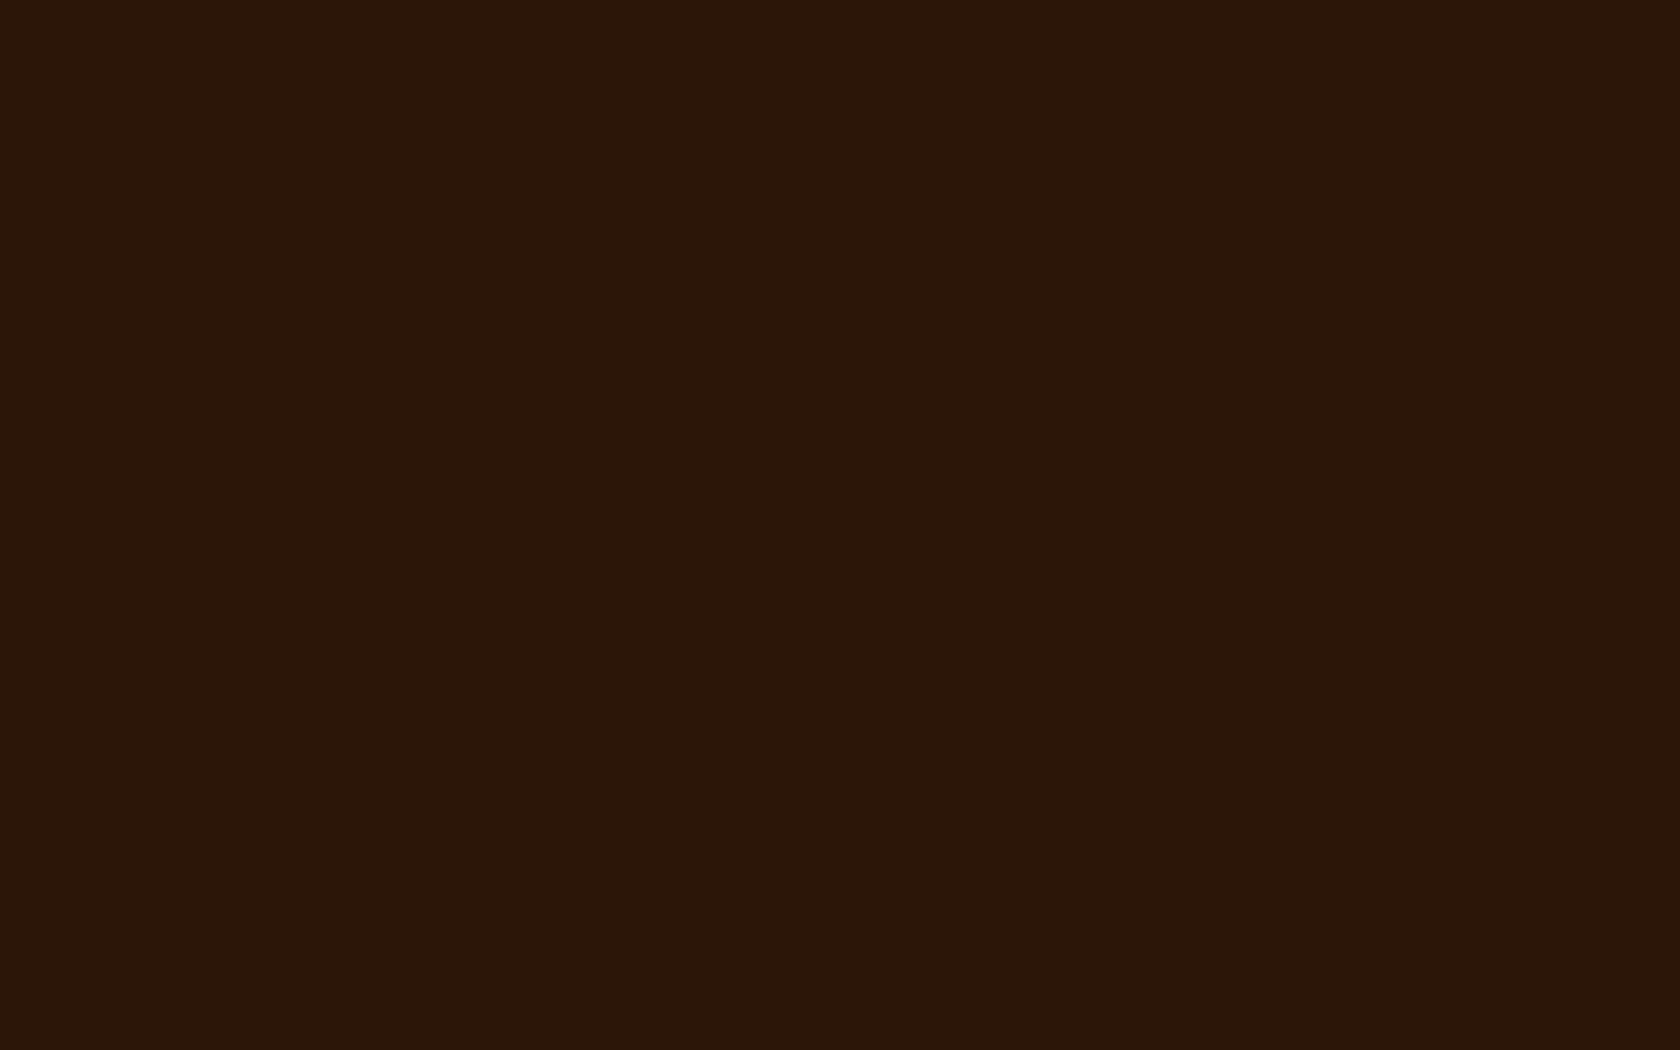 1680x1050 Zinnwaldite Brown Solid Color Background